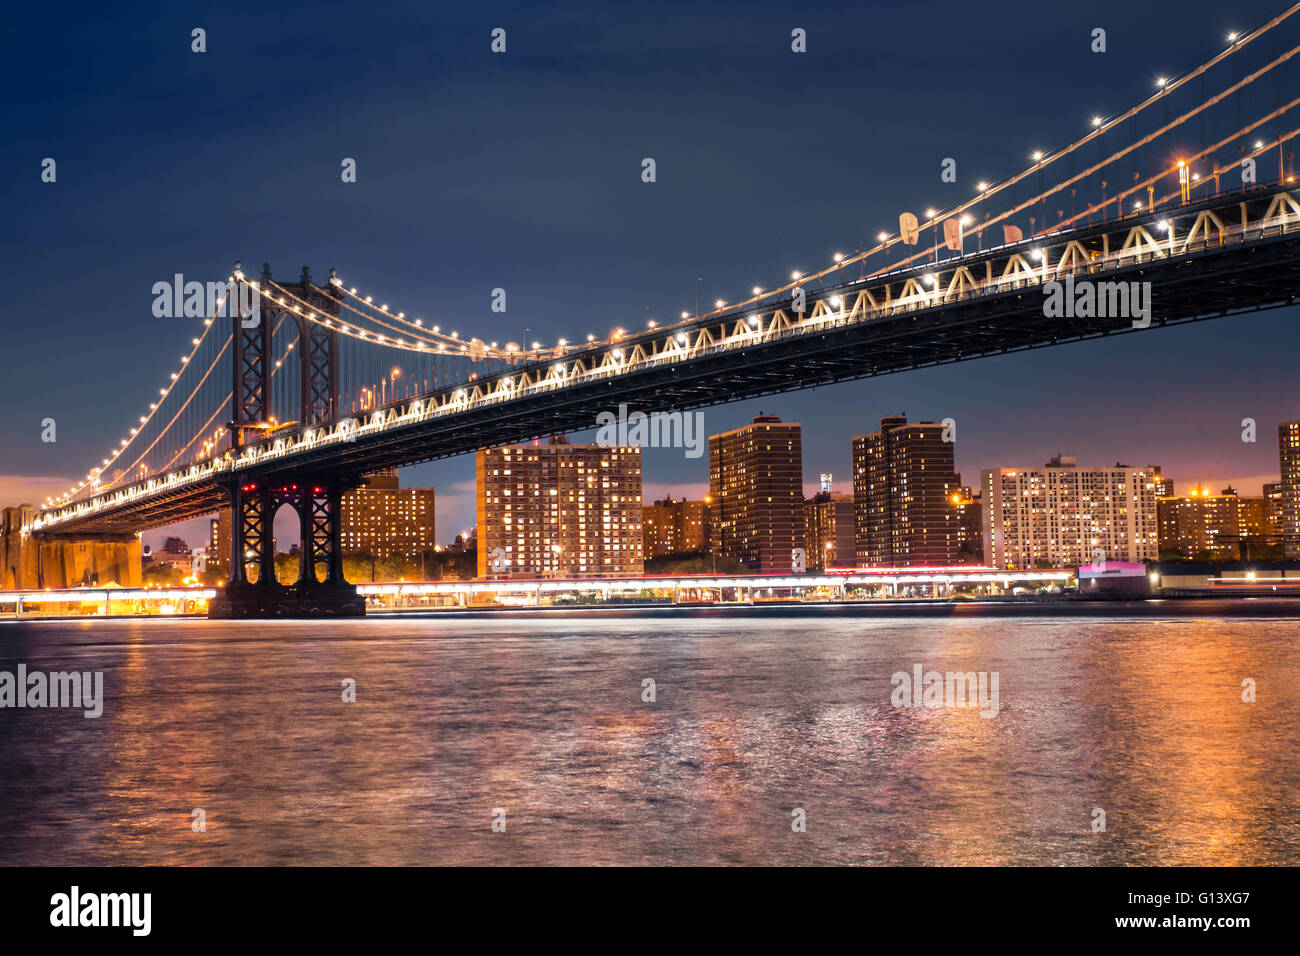 View of Manhattan Bridge from Brooklyn to Manhattan New York City seen lit up at night - Stock Image